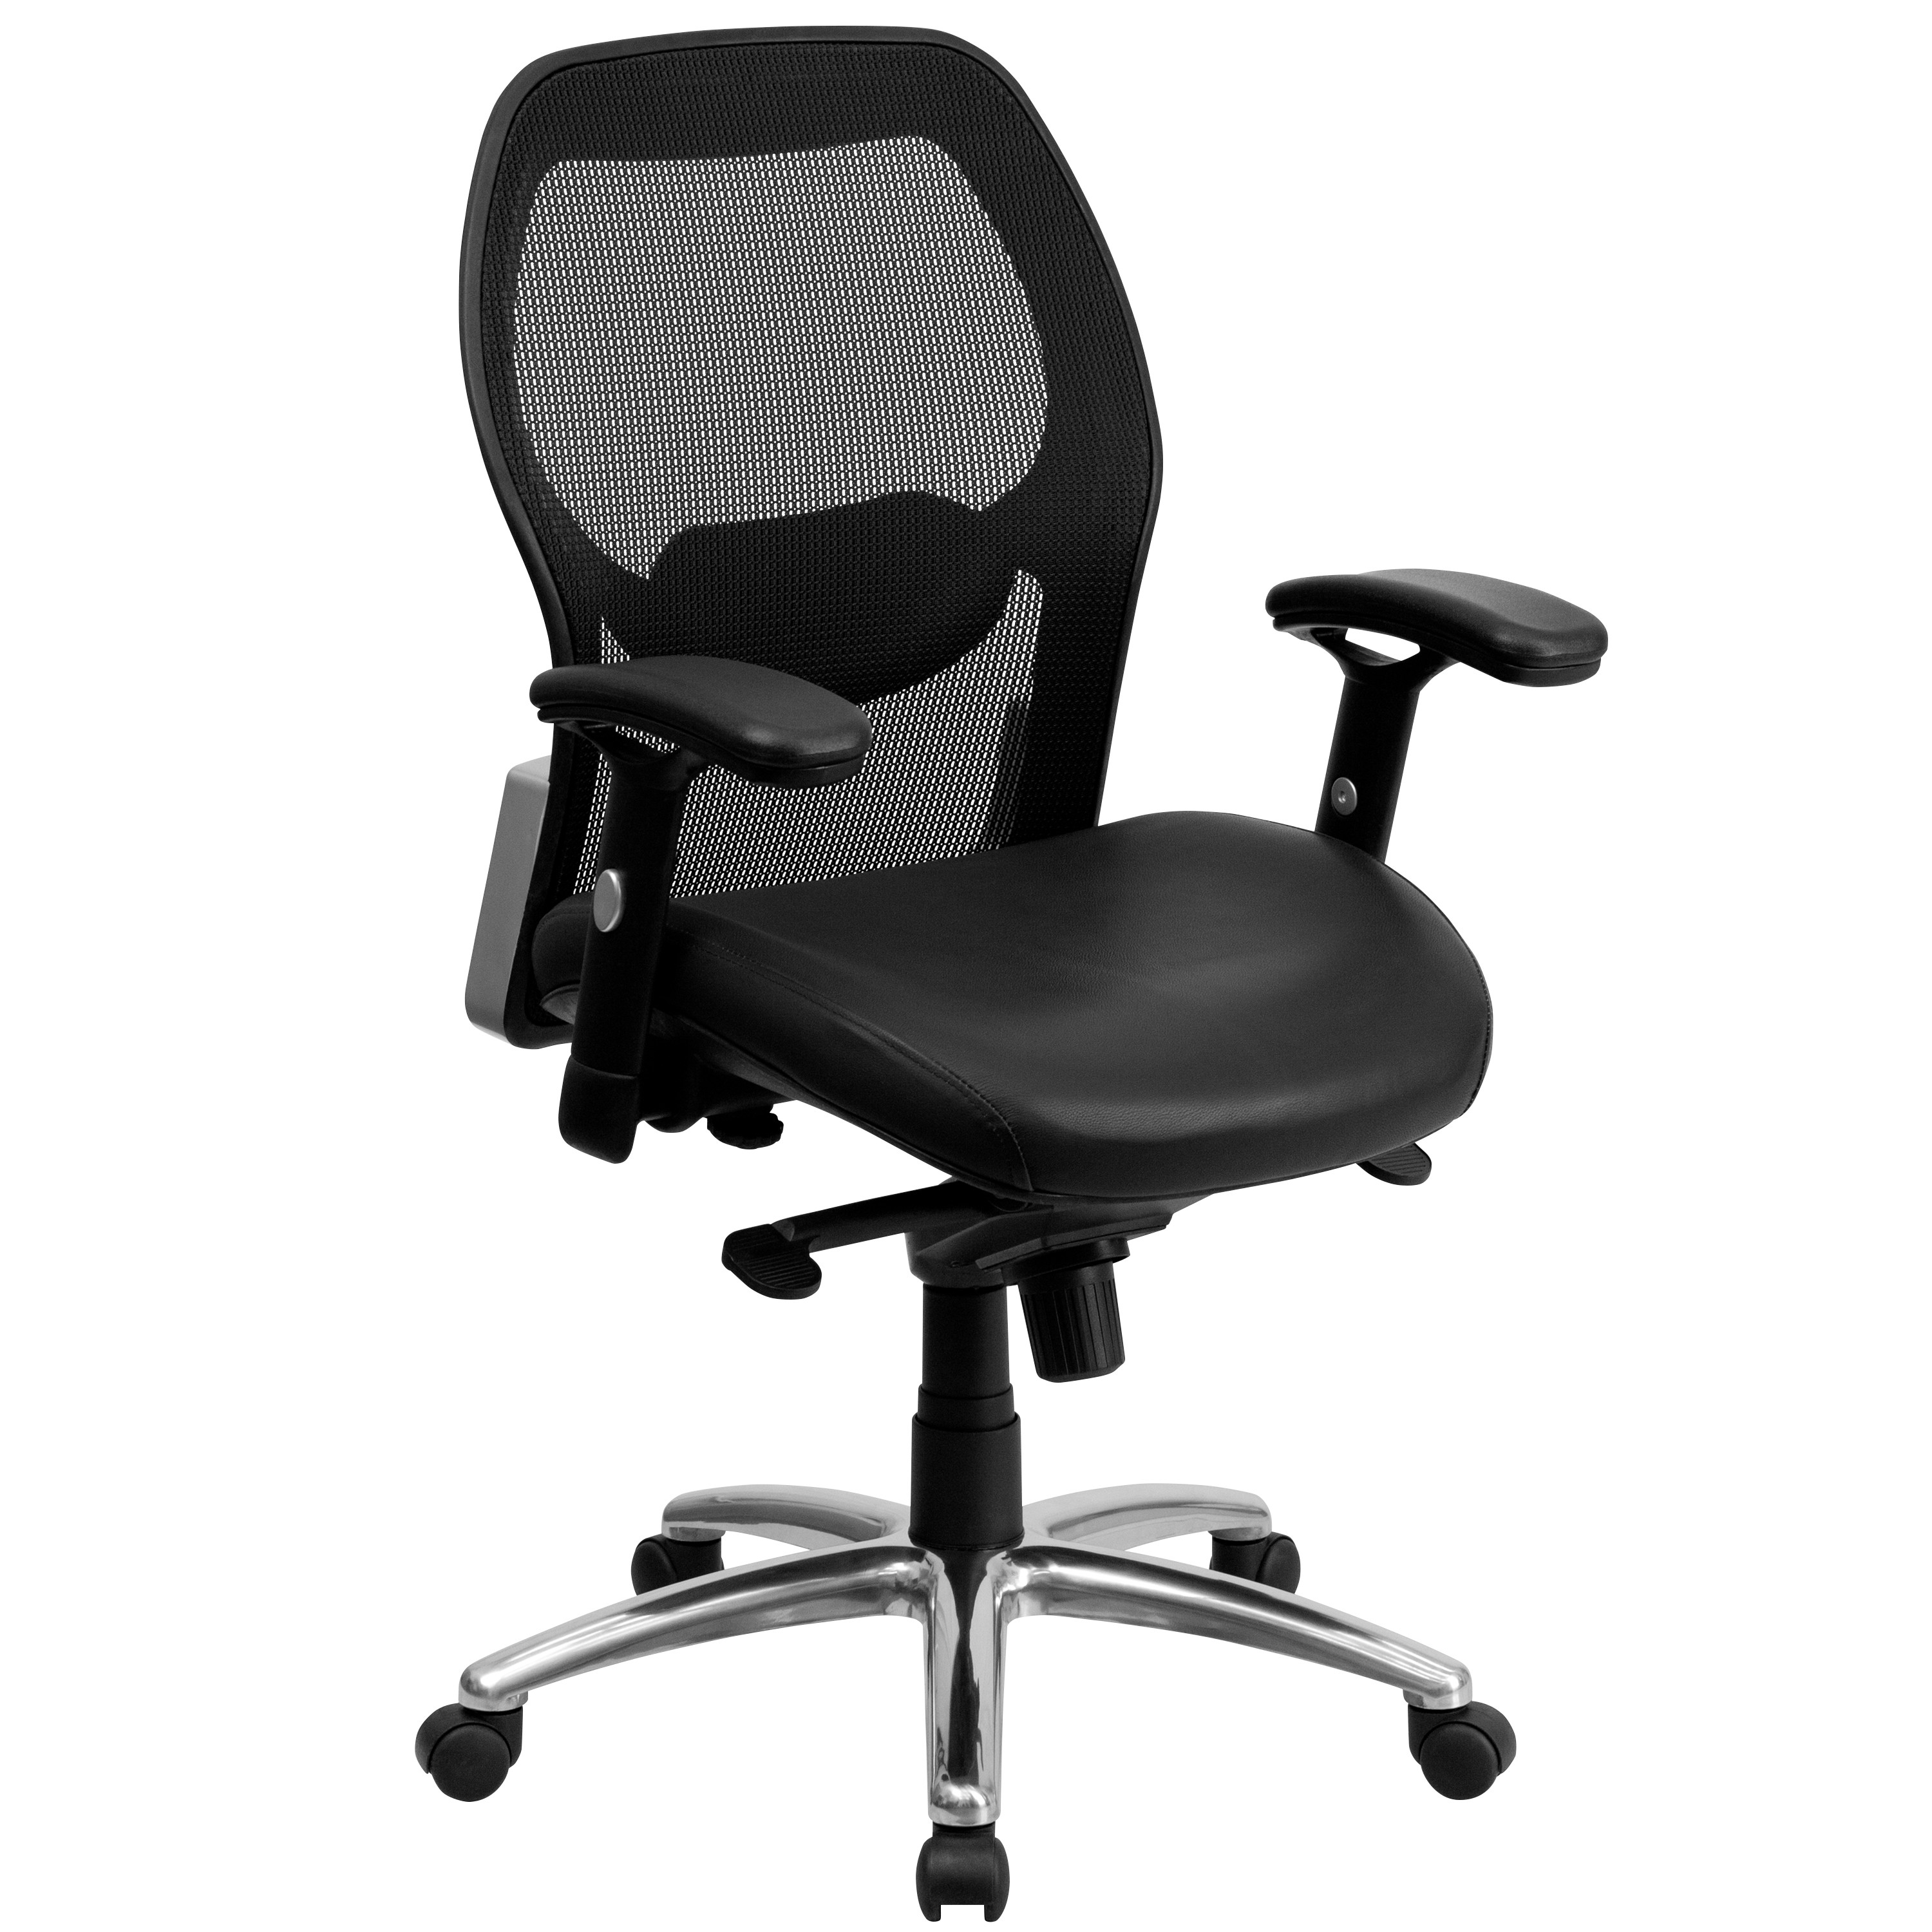 Mfo Mid Back Super Mesh Office Chair With Black Leather Seat And Knee Tilt Control